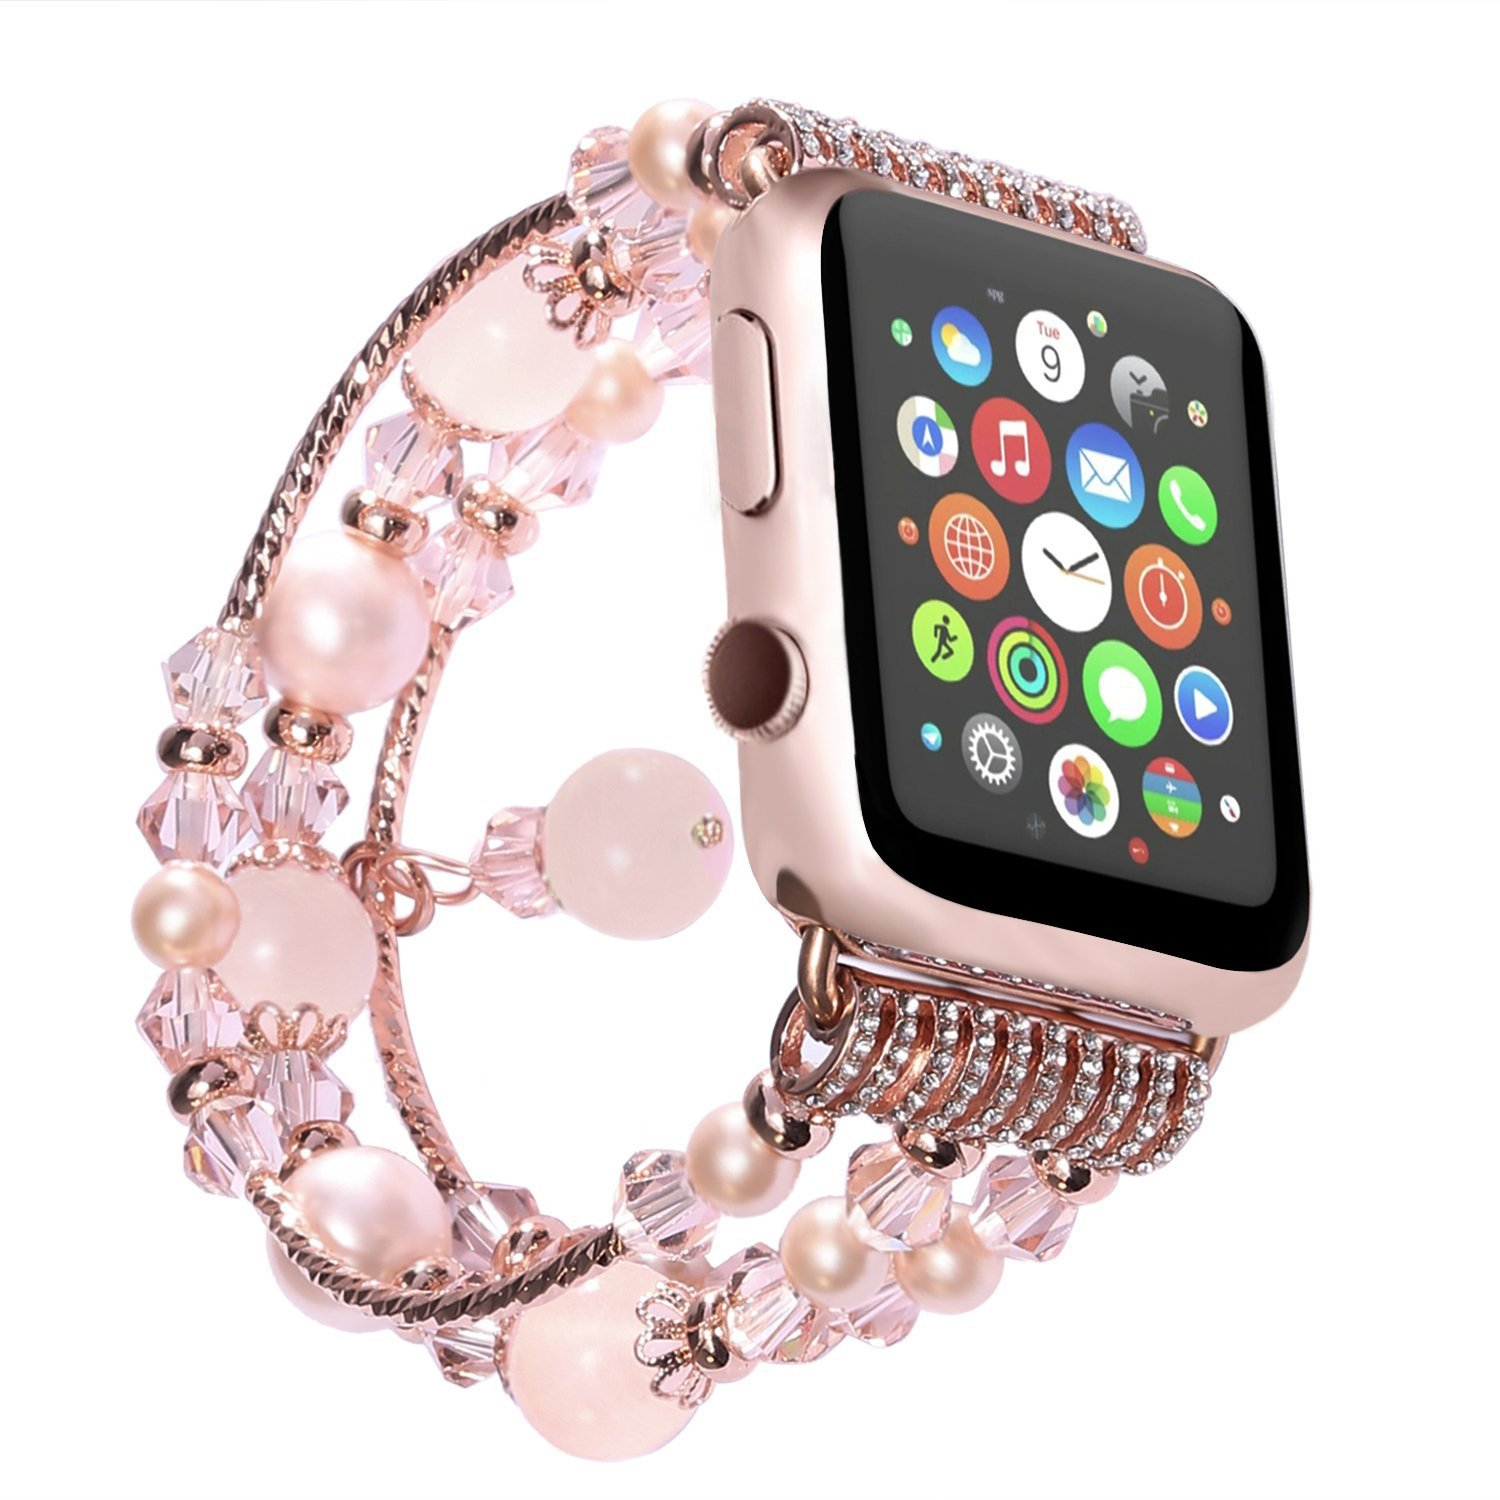 Apple Watch Band , ANGGO Fashion Elastic Stretch iwatch Strap Replacement iWatch Band Faux Pearl Natural Agate Stone Bracelet for Apple Watch Series 3 Series 2 Series 1 All Version (38mm / Pink)